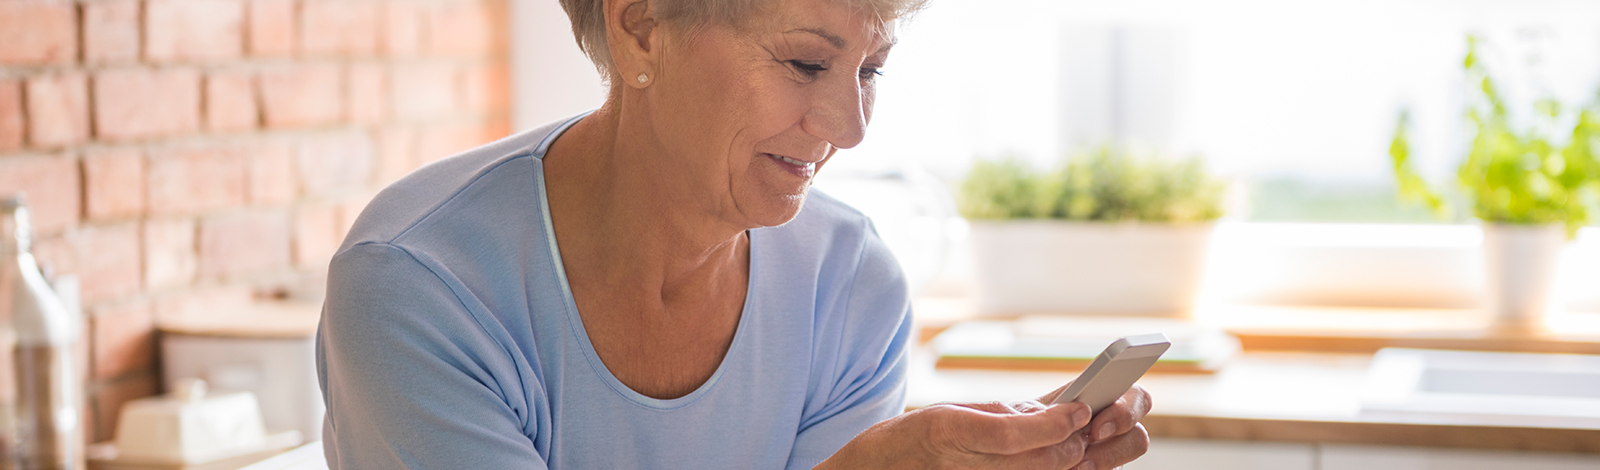 Woman checking account balance on phone